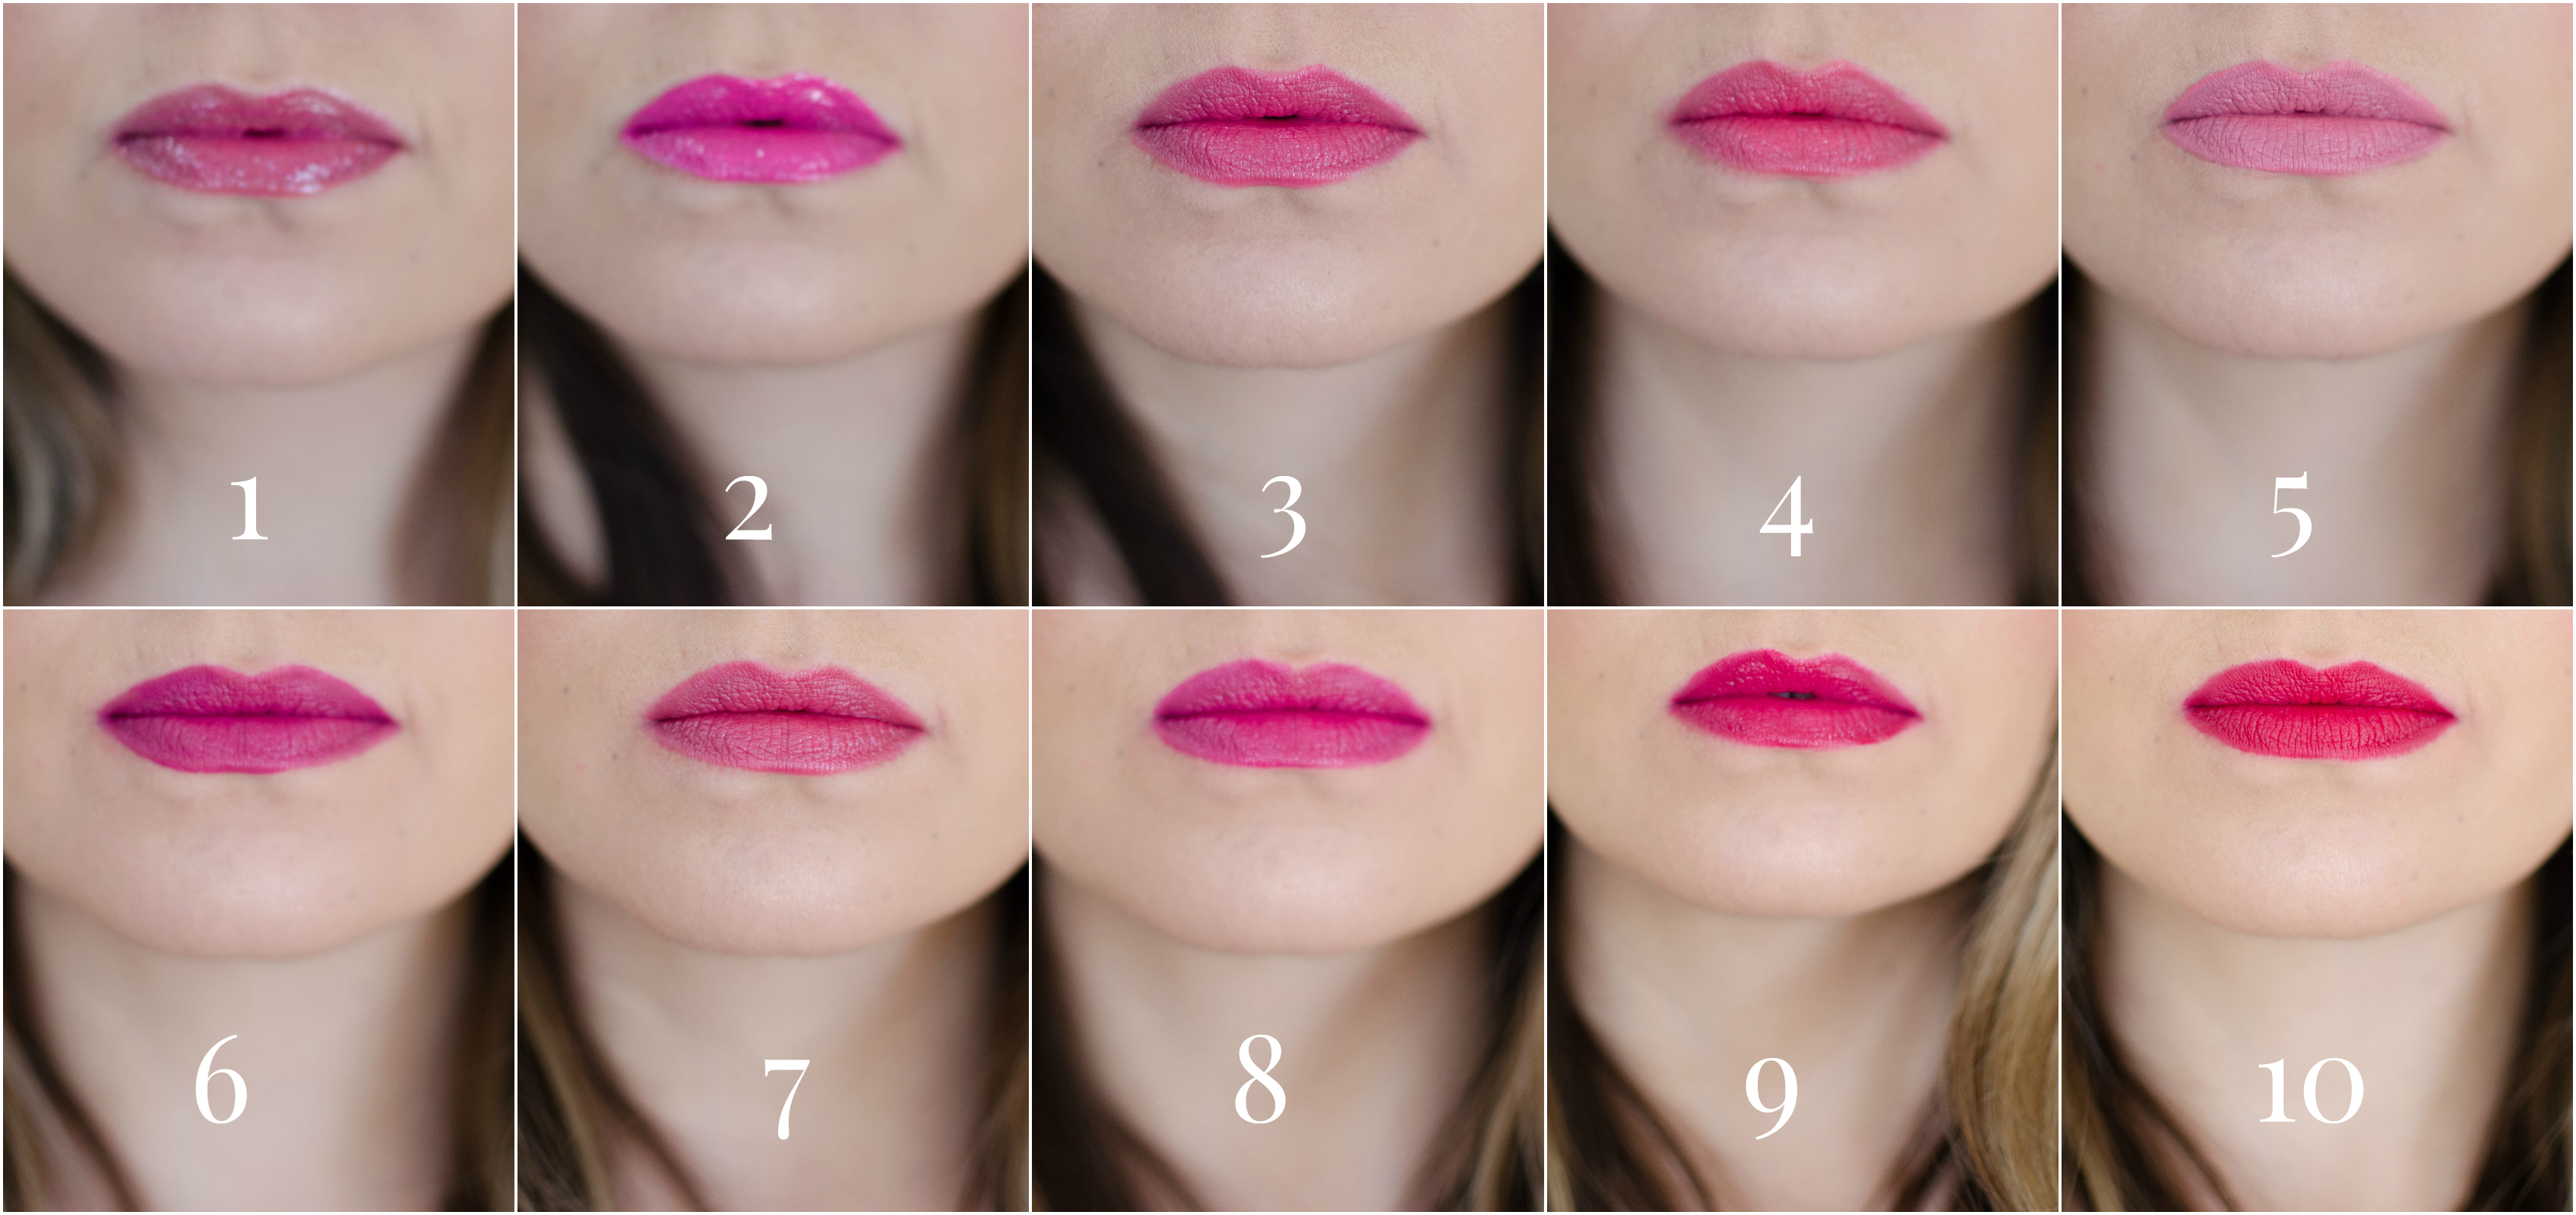 Top 10 Best Pink Drugstore Lipsticks | By Lauren M